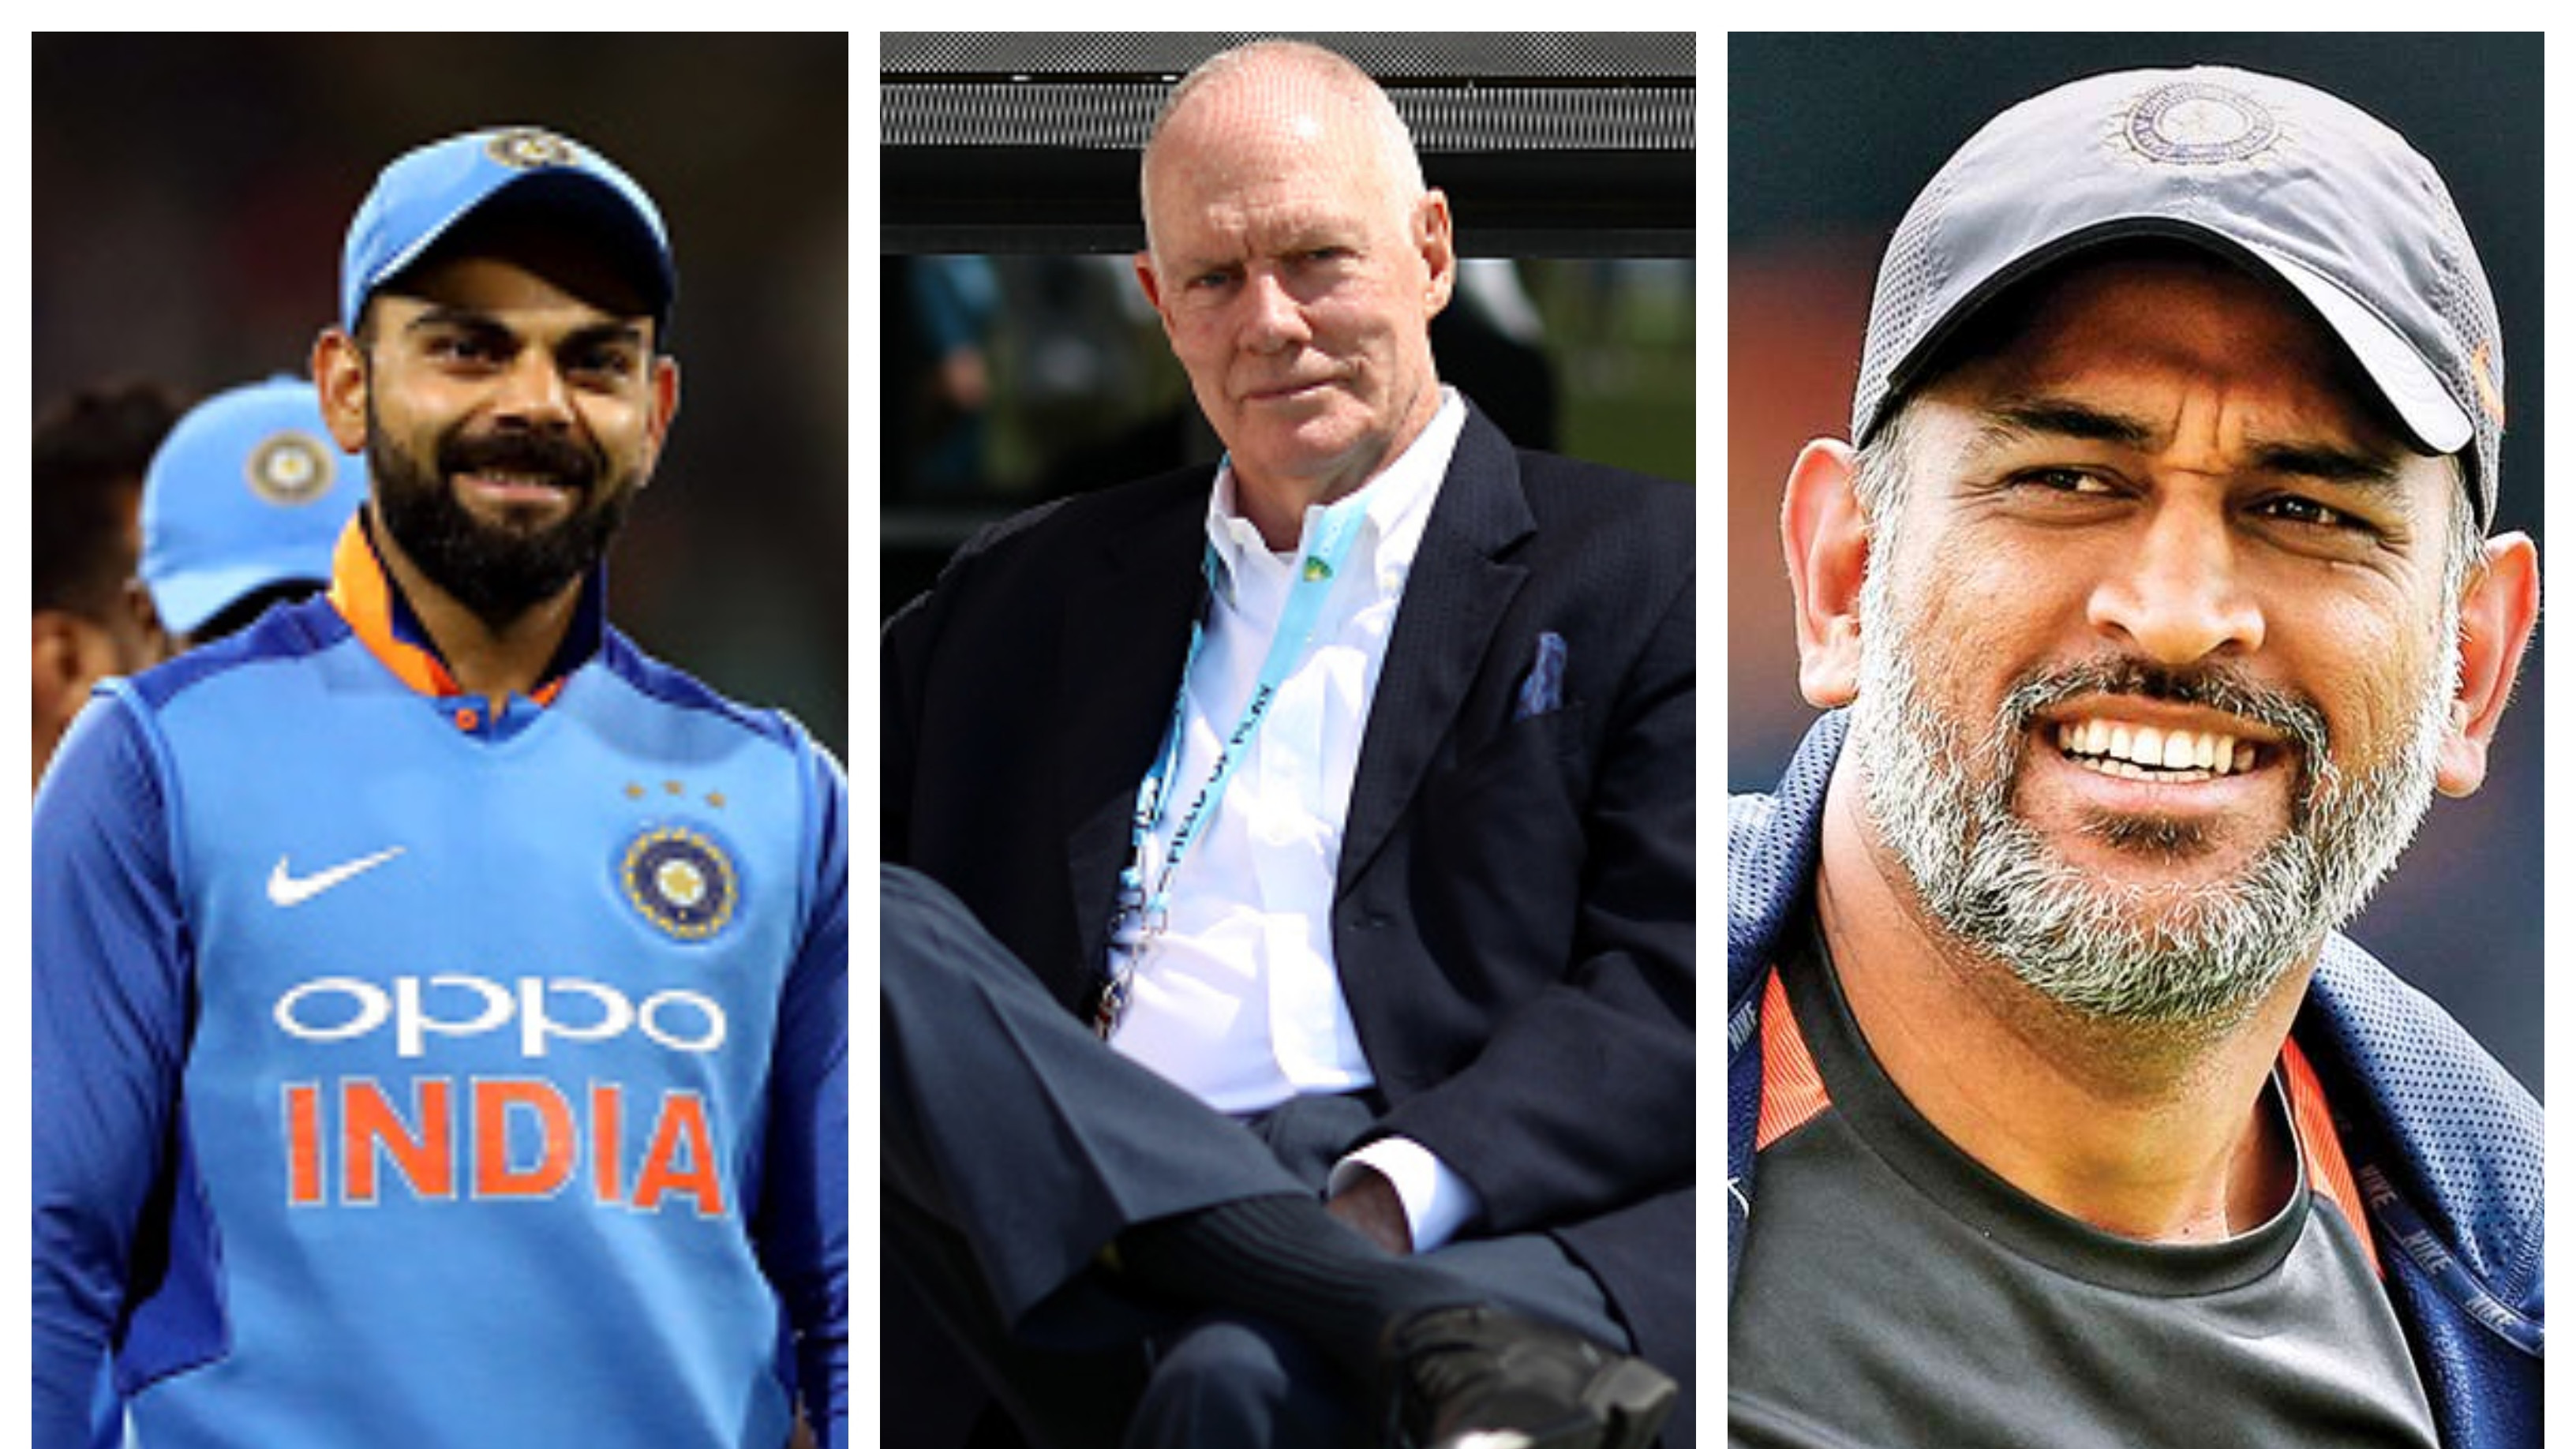 Greg Chappell compliments MS Dhoni and Virat Kohli for their immense popularity in Australia